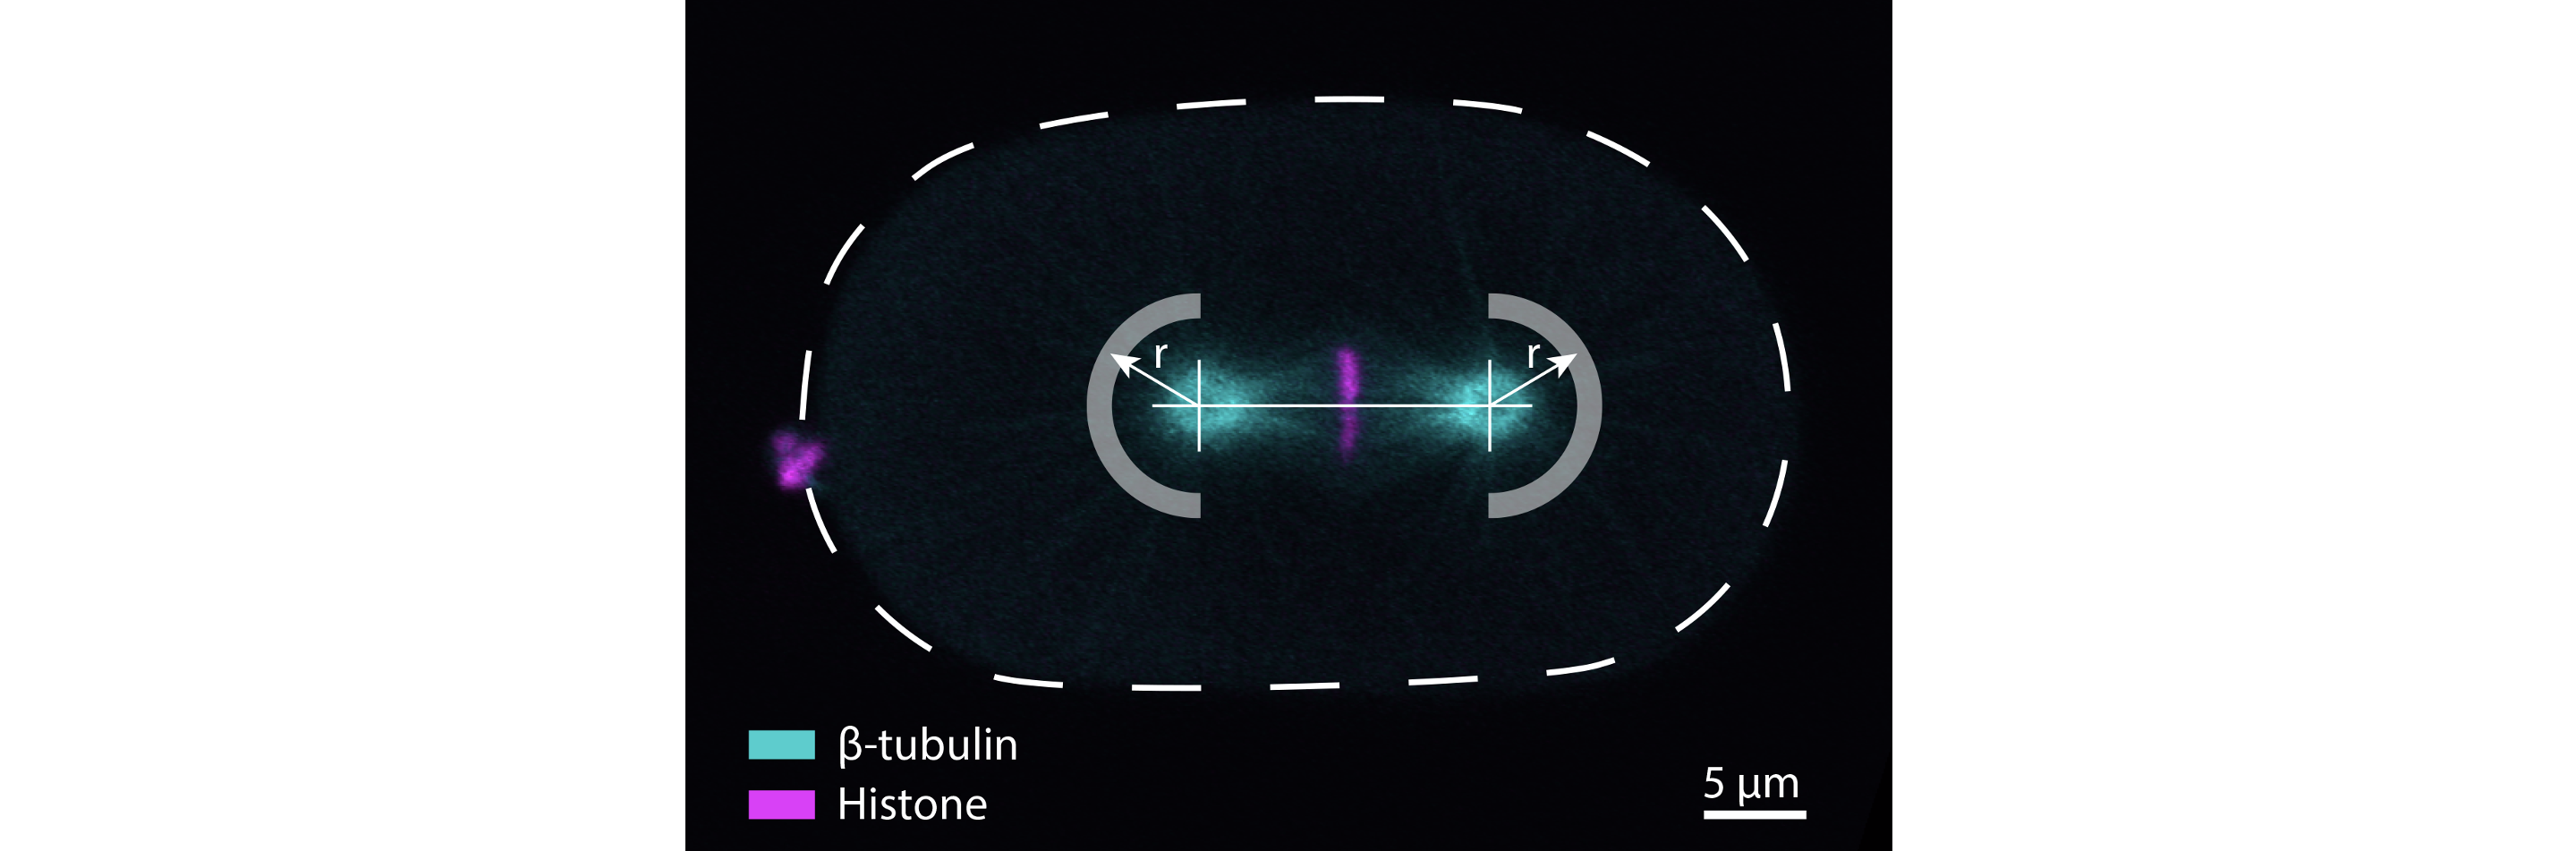 Soluble tubulin is significantly enriched at mitotic centrosomes